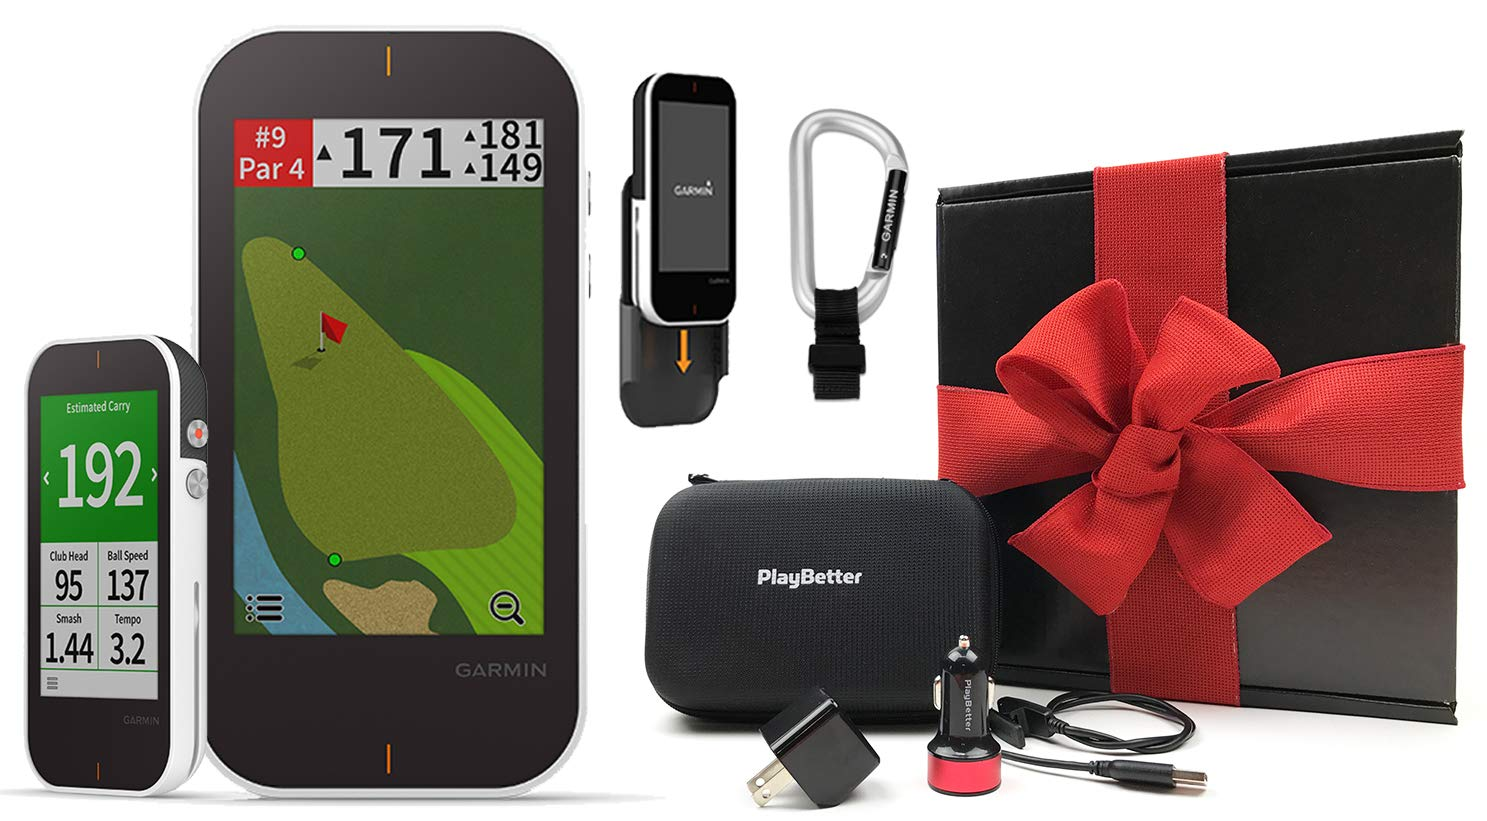 Garmin Approach G80 Golf GPS & Launch Monitor Gift Box Bundle with PlayBetter USB Wall/Car Adapters & Hard Case | Cart/Trolley Mount & Carabiner Clip | 41,000 Courses | Black Gift Box, Red Bow